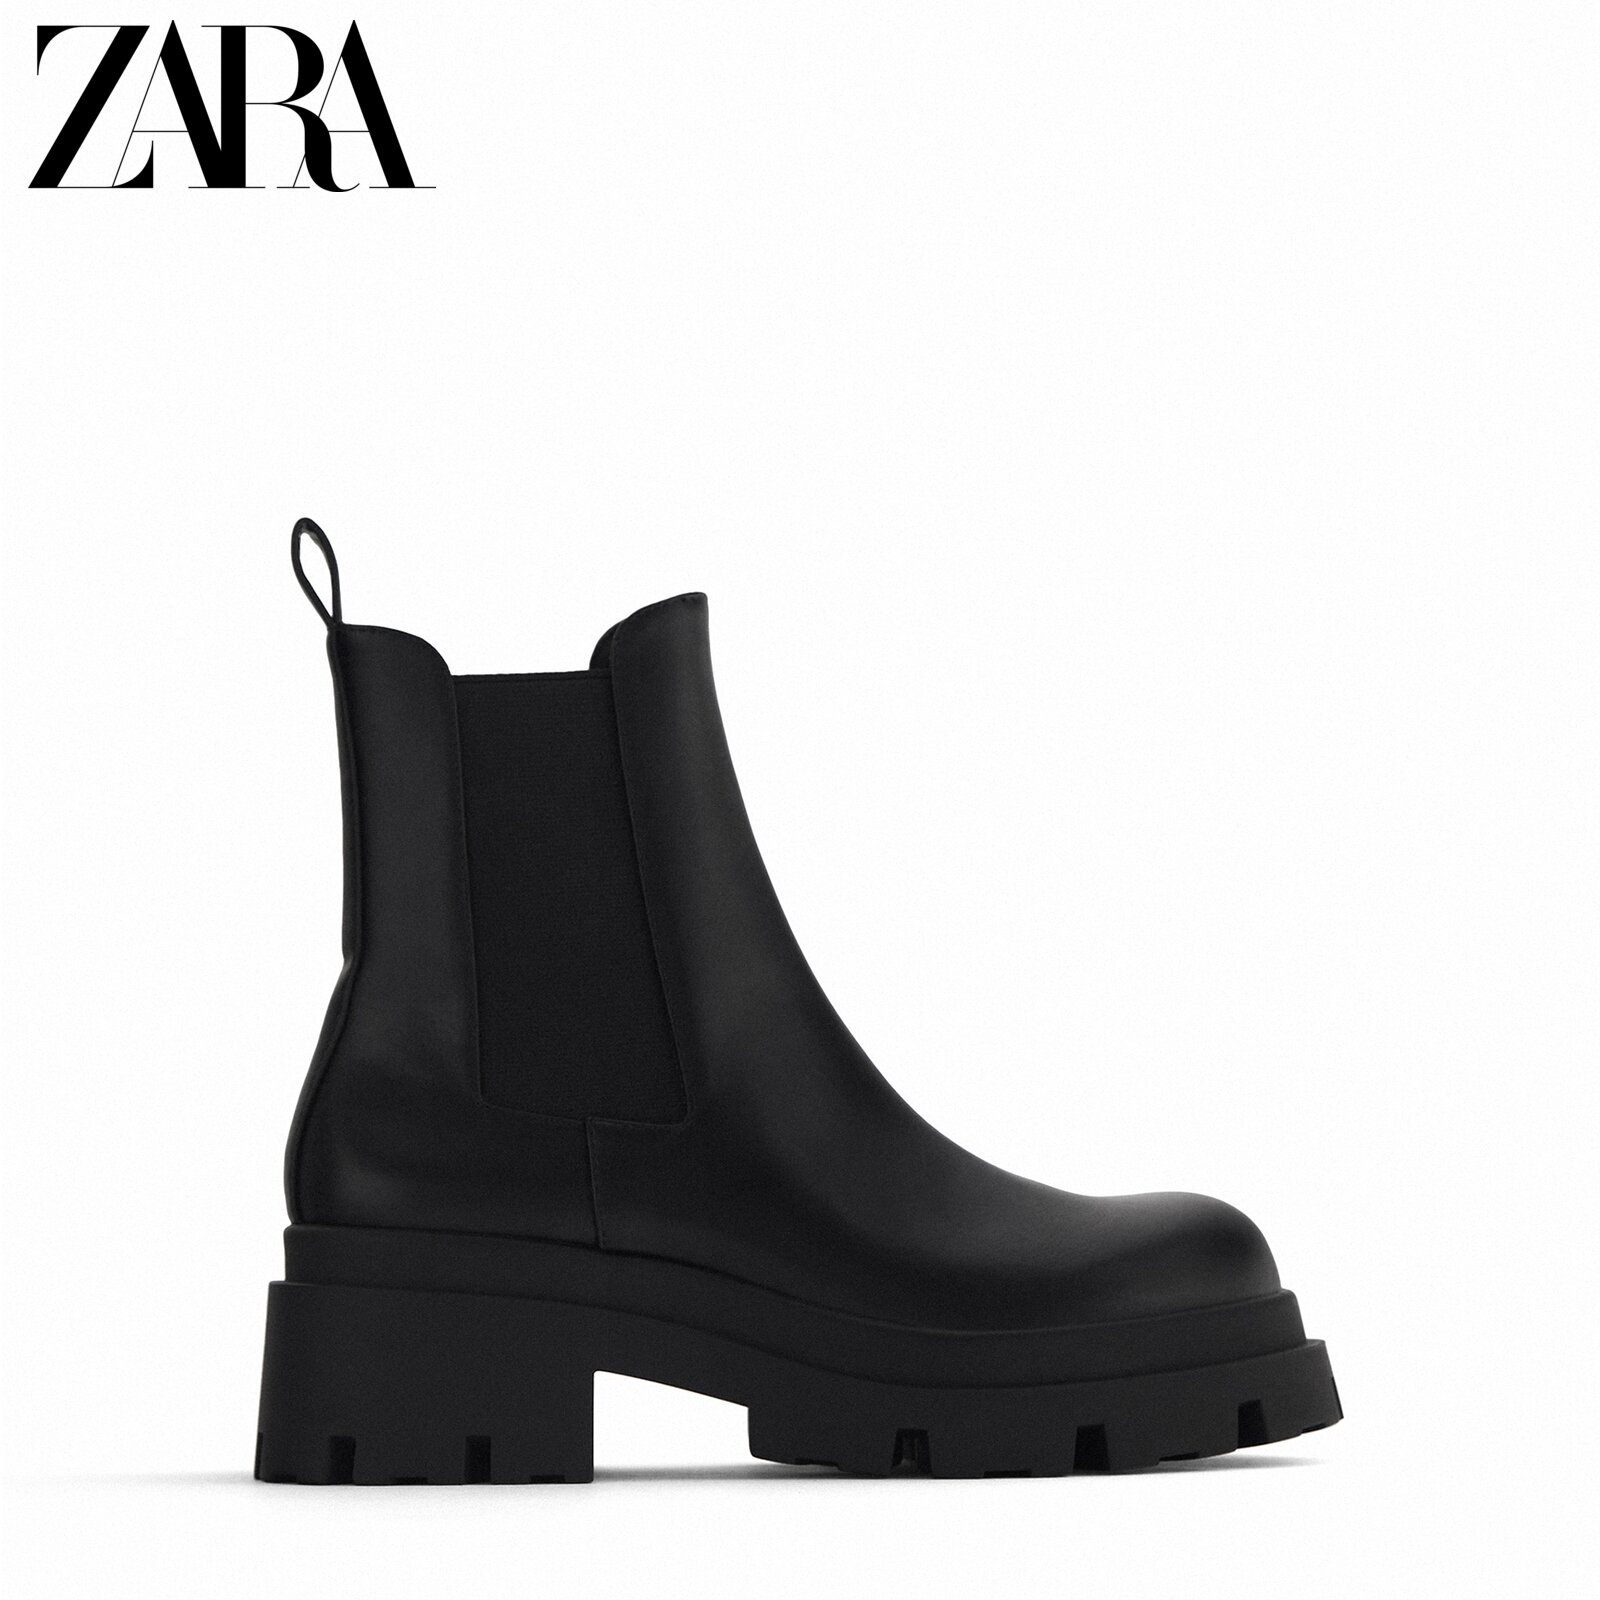 ZARA new TRF women's shoes, black grooved sole, flat-bottomed chimney, Chelsea short boots 13126610040